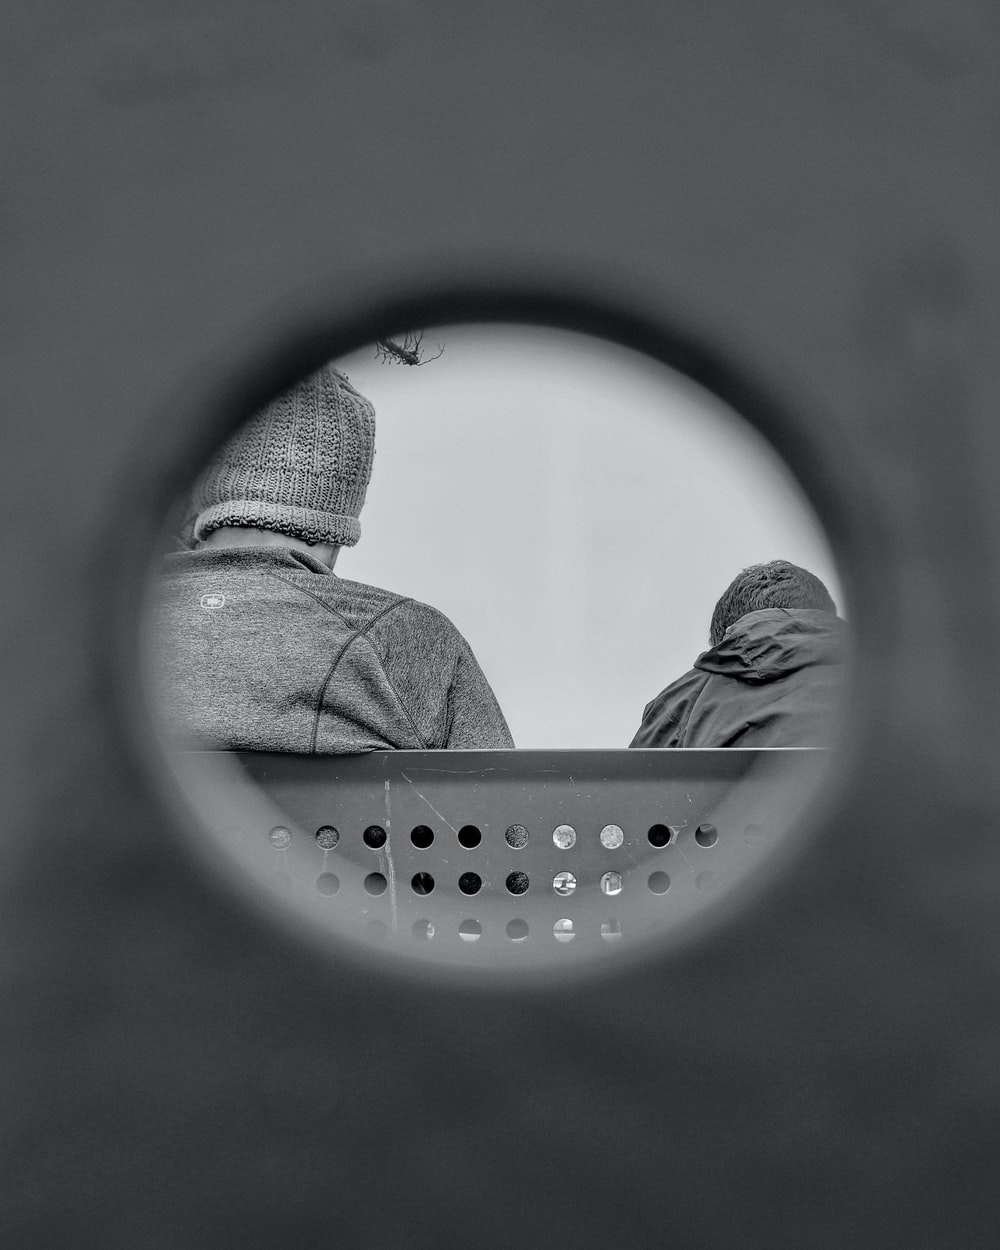 person in gray knit cap looking at round mirror